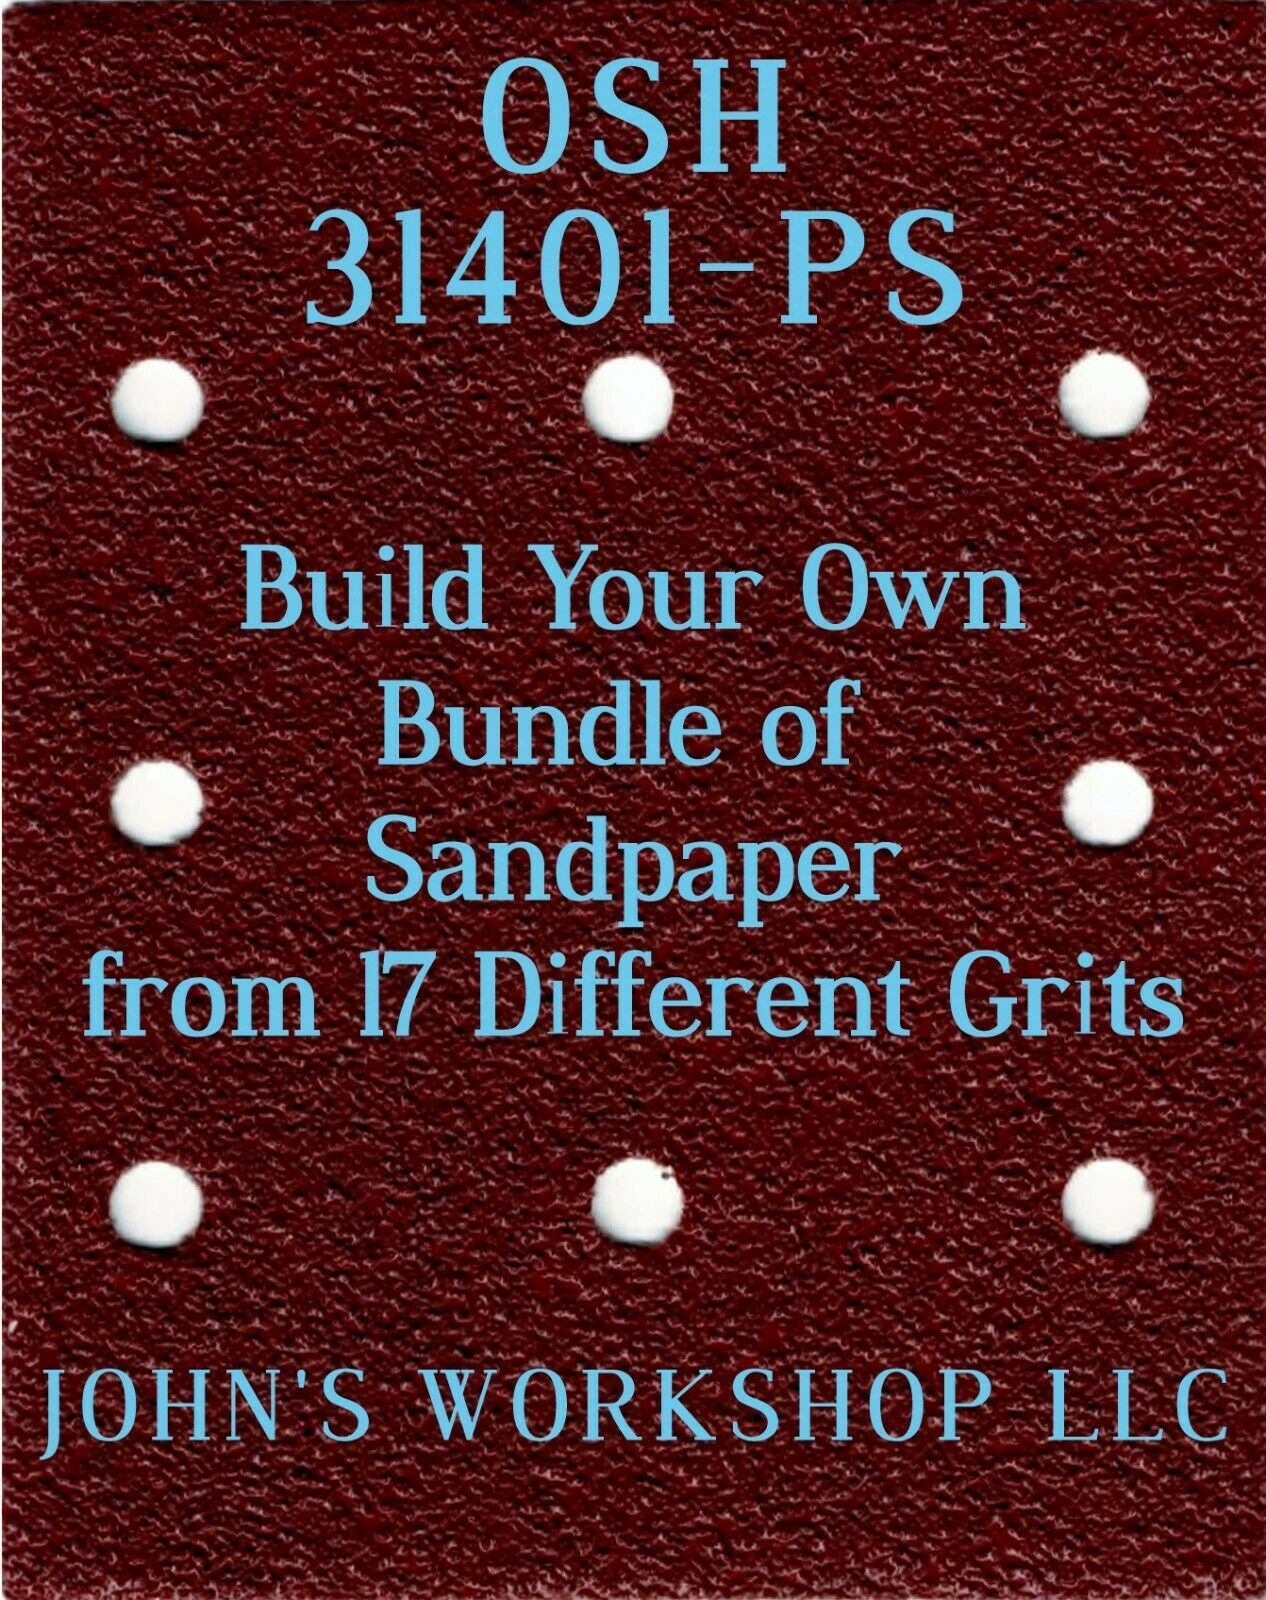 Primary image for Build Your Own Bundle OSH 31401-PS 1/4 Sheet No-Slip Sandpaper 17 Grits